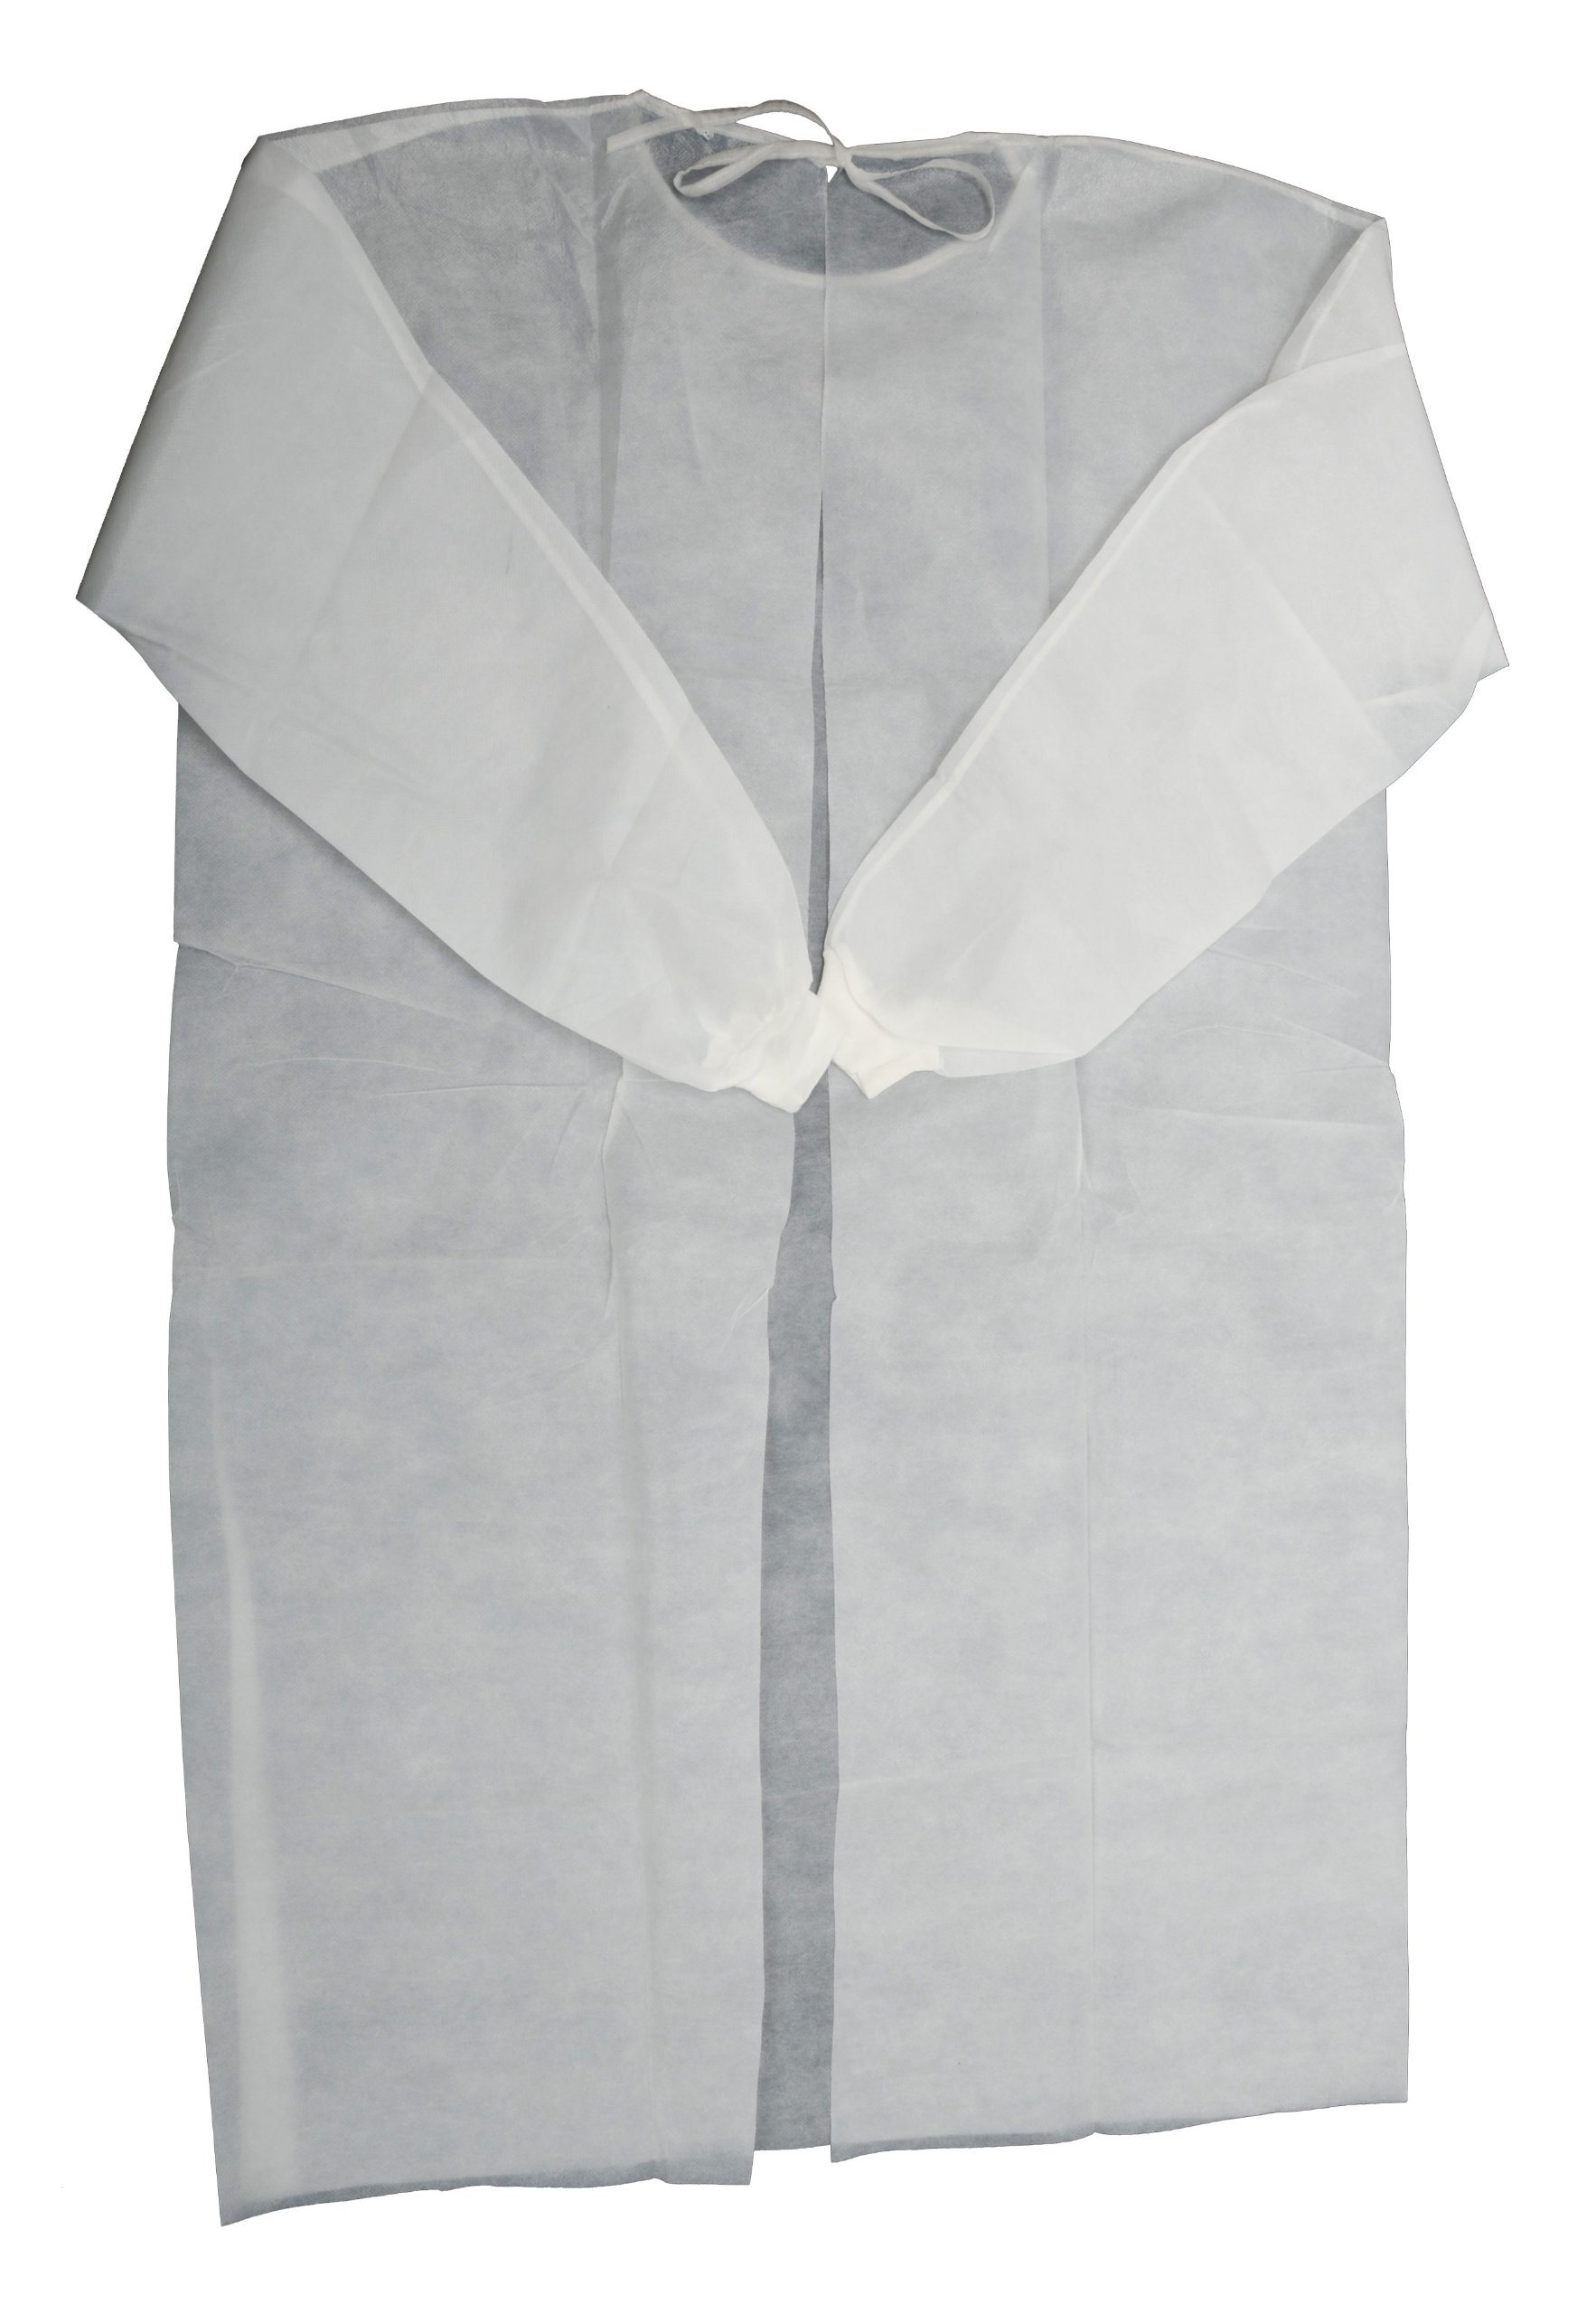 Primacare IG-1702 Isolation Gown, Universal Size with Knitted Cuff, Disposable (Pack of 10)